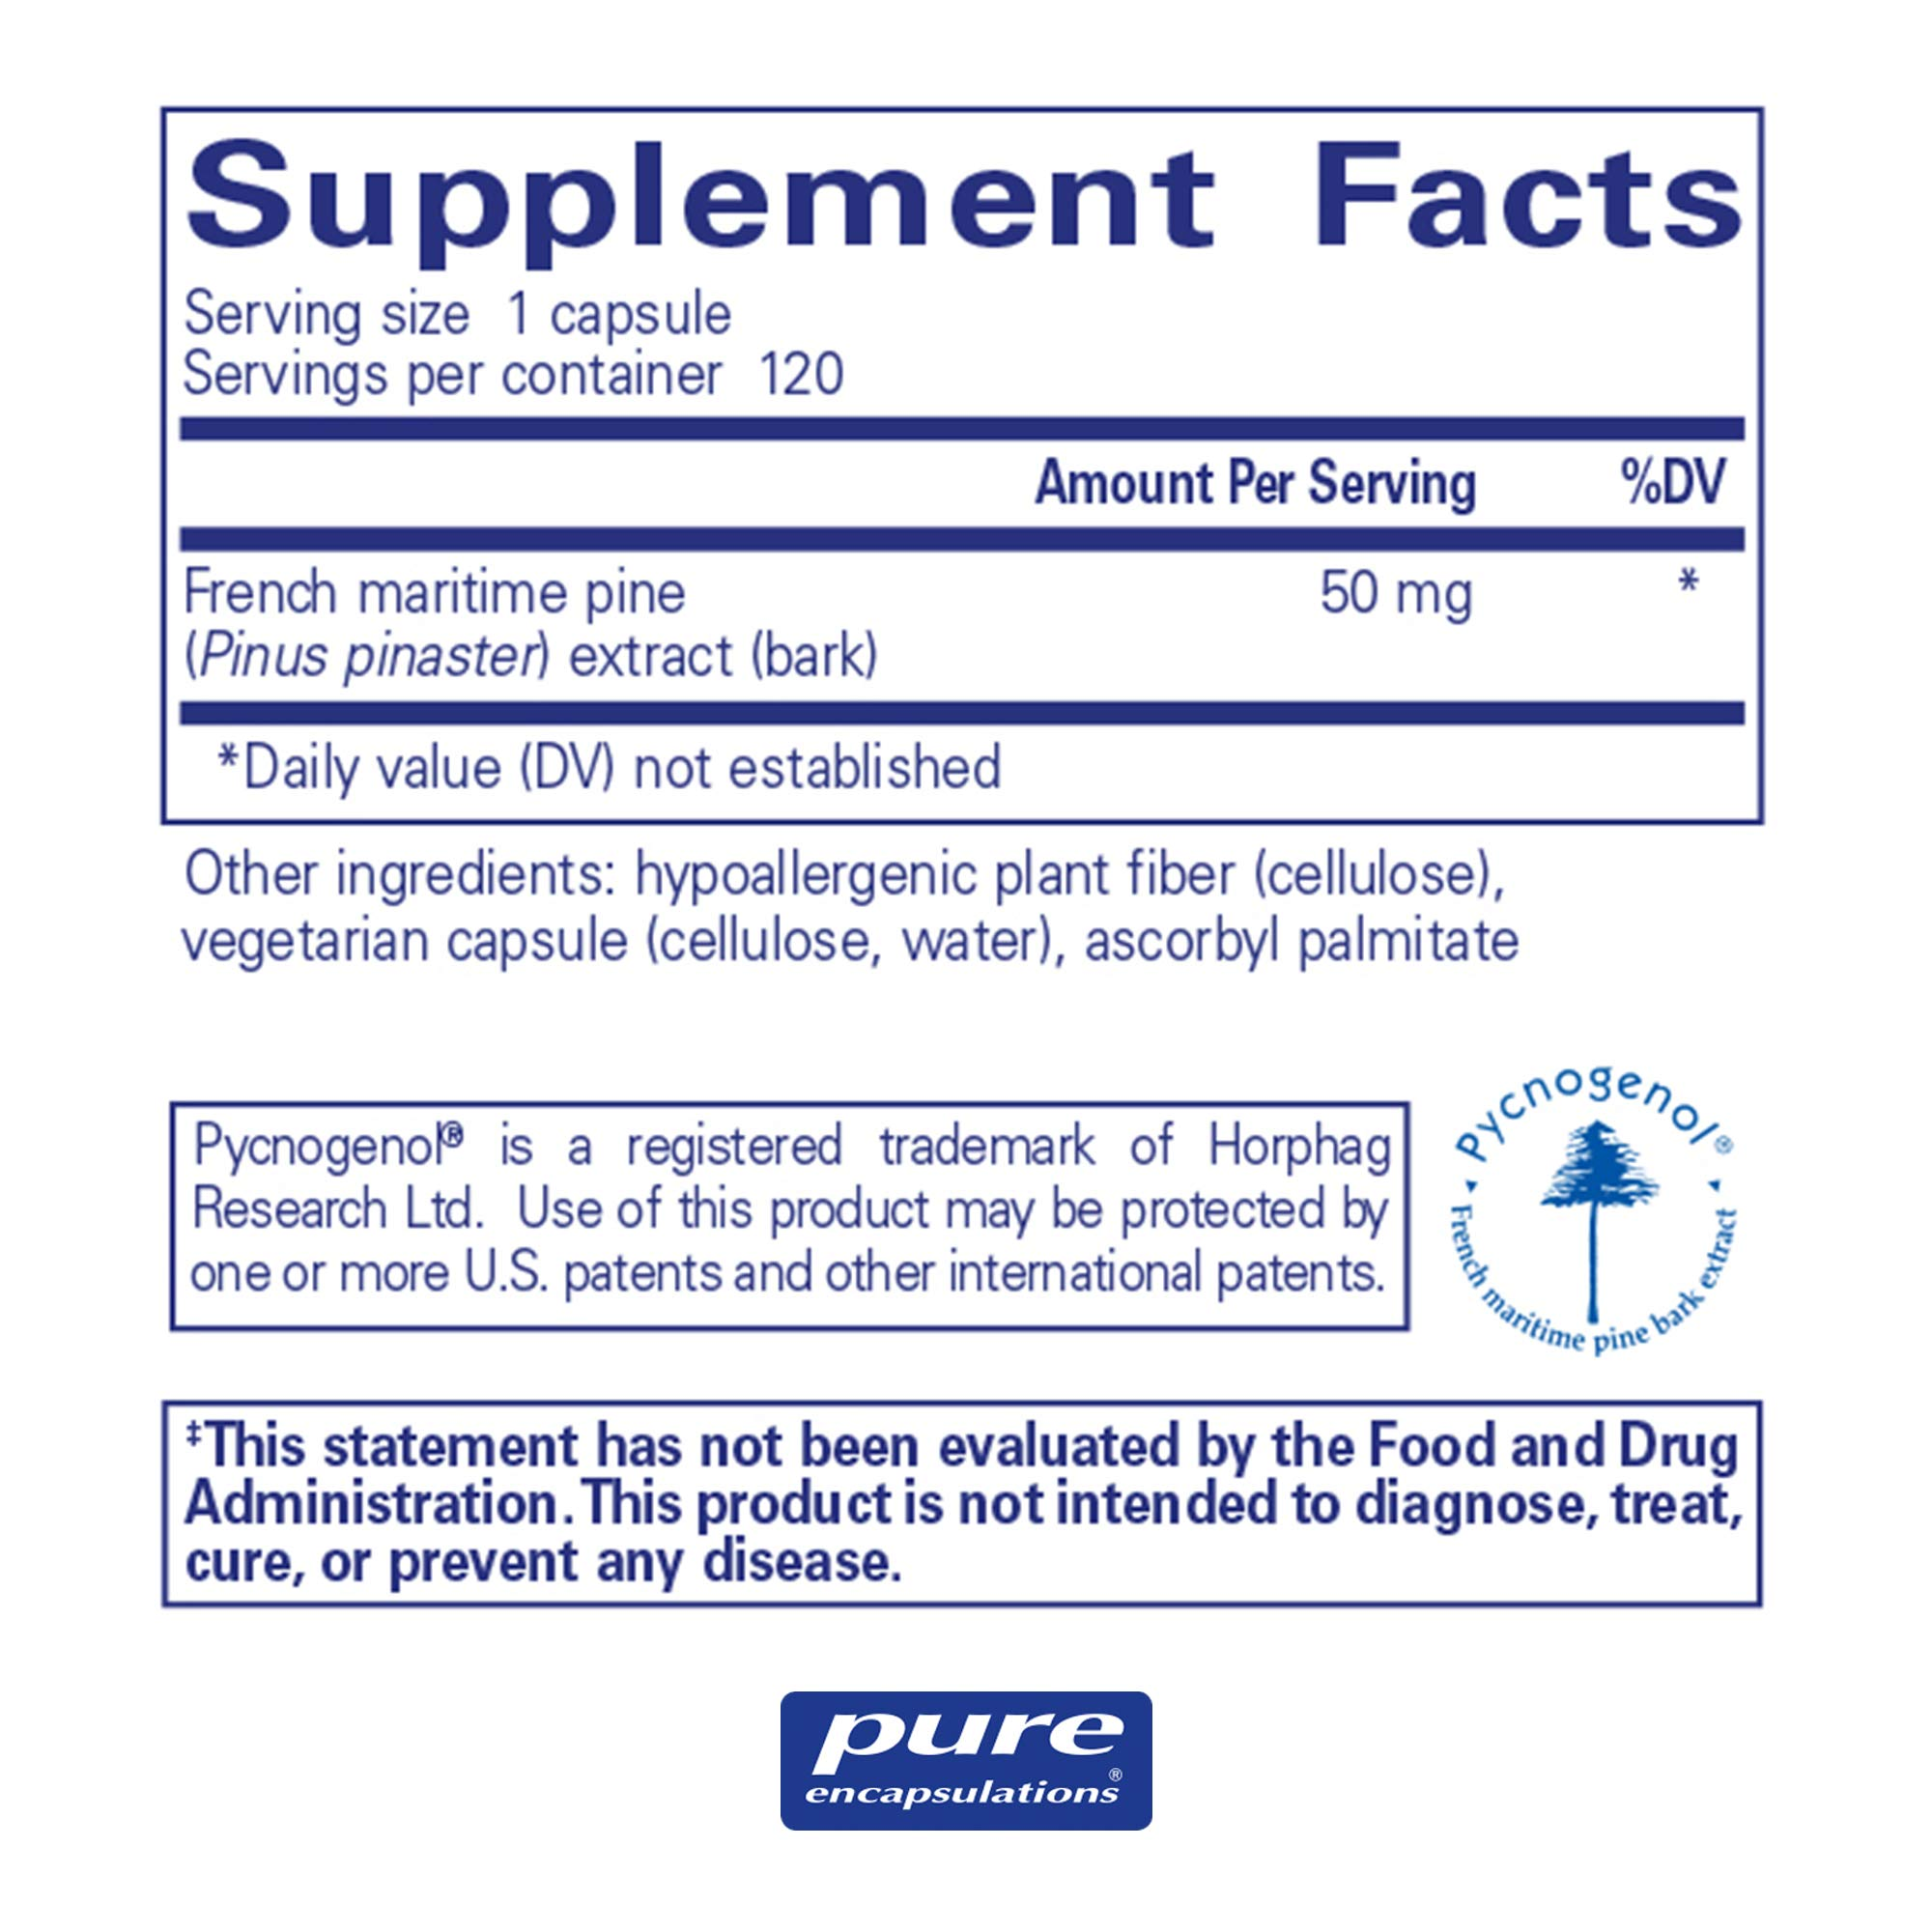 Pure Encapsulations - Pycnogenol 50 mg - Hypoallergenic Supplement to Promote Vascular Health and Provide Antioxidant Support - 120 Capsules by Pure Encapsulations (Image #2)